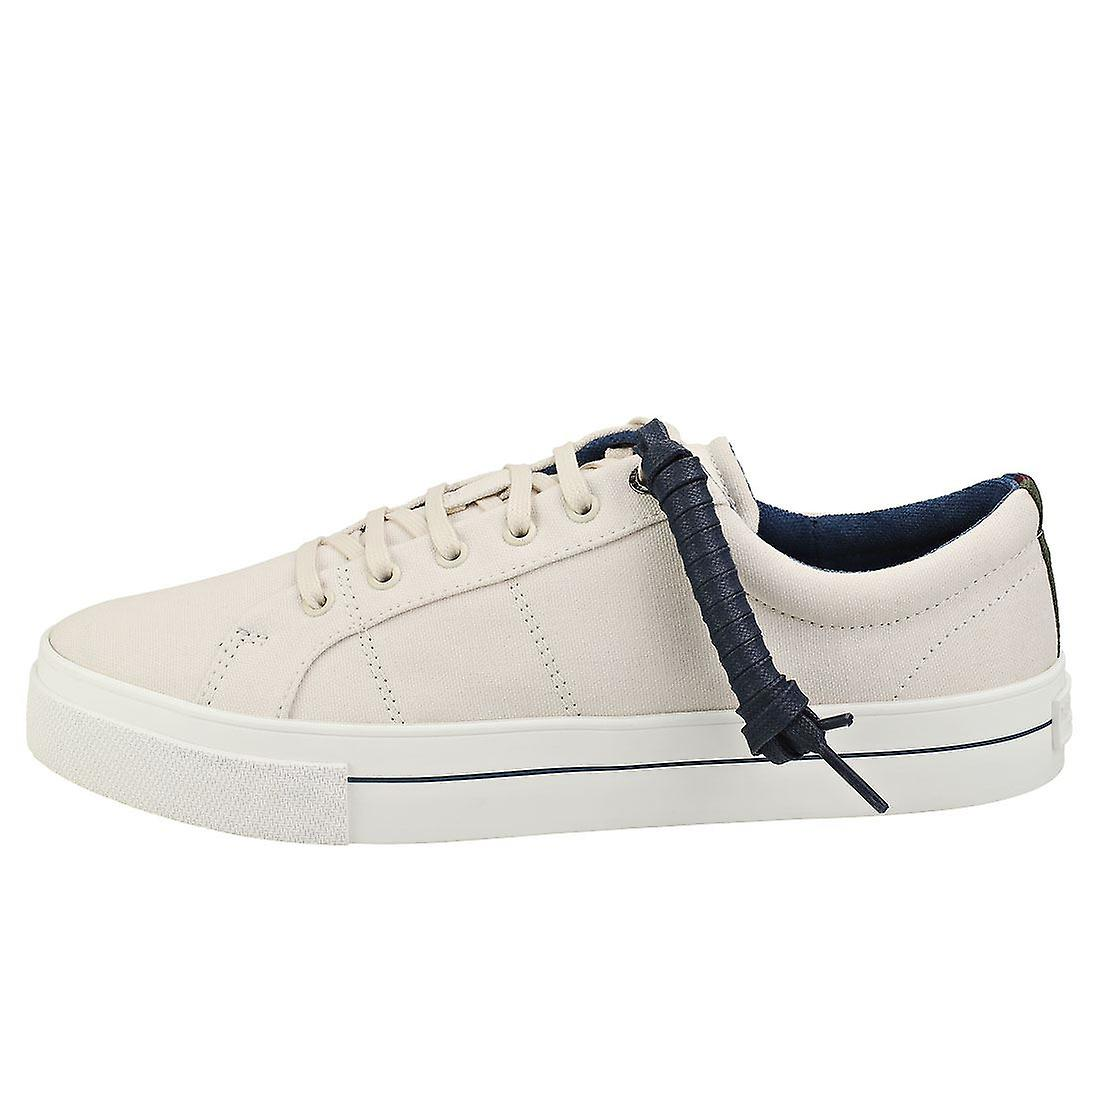 Ted Baker Essher Mens Flatform Trainers in White